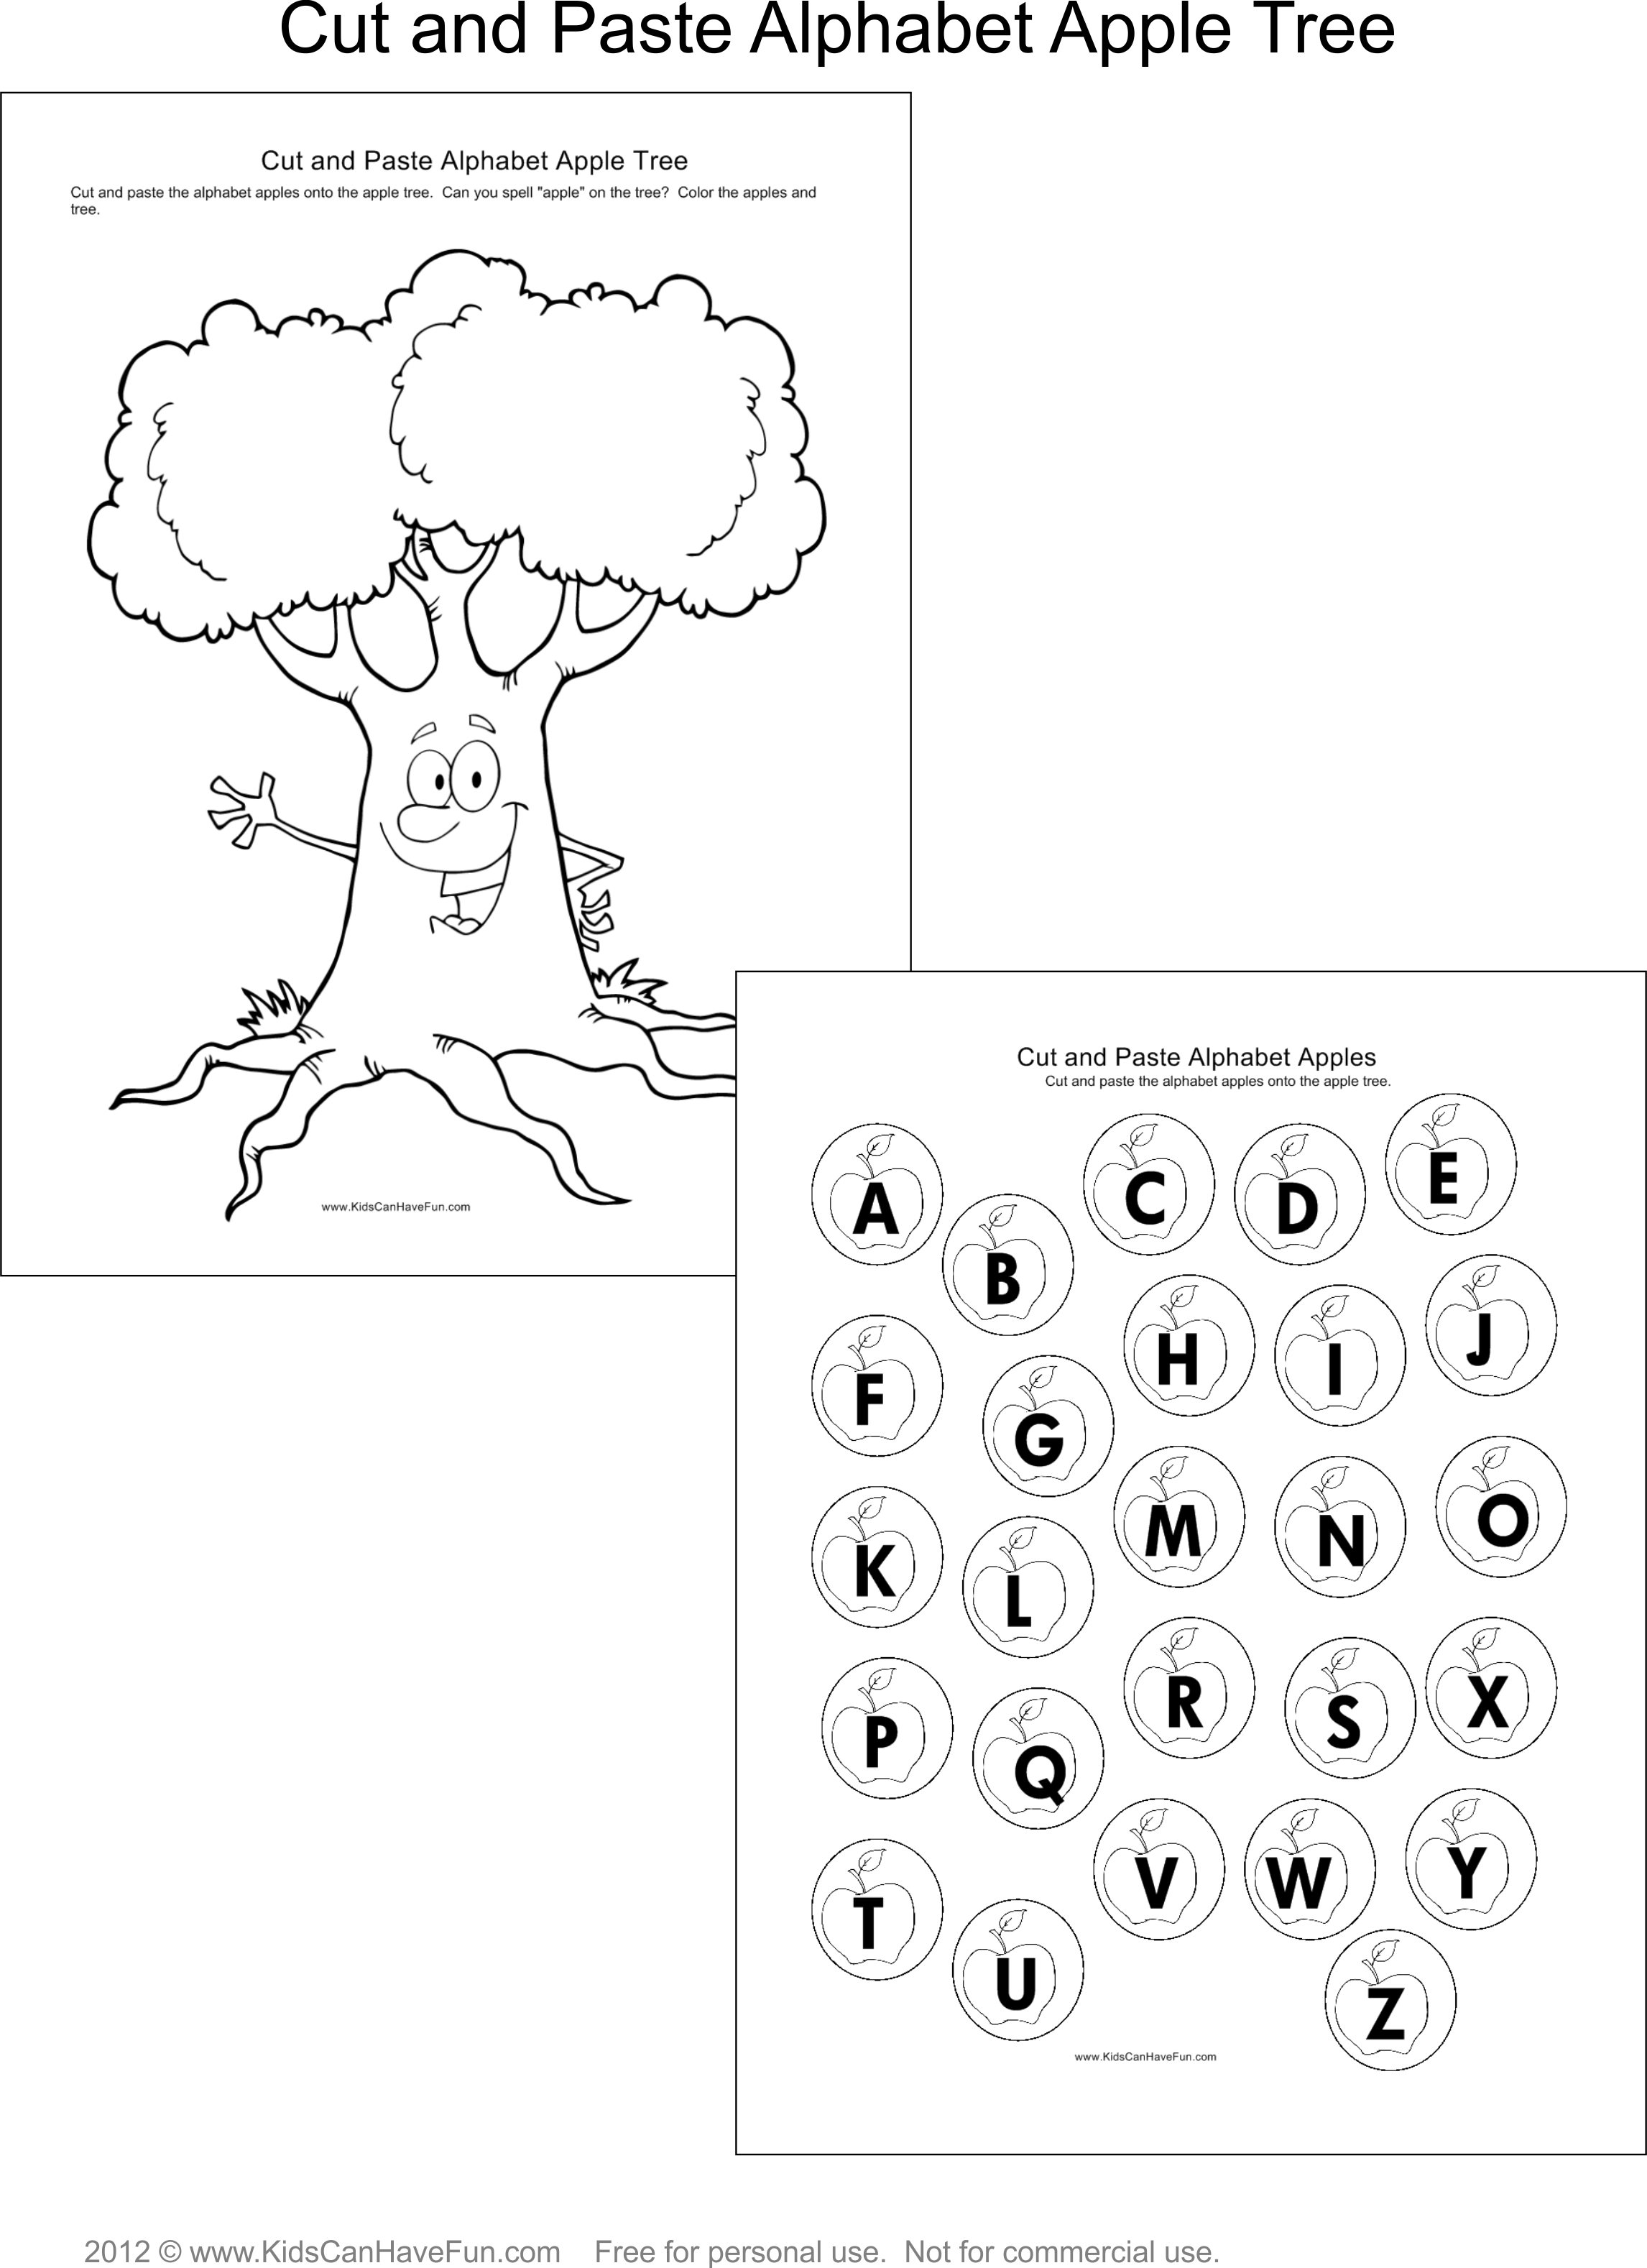 Cut And Paste Alphabet Apple Tree